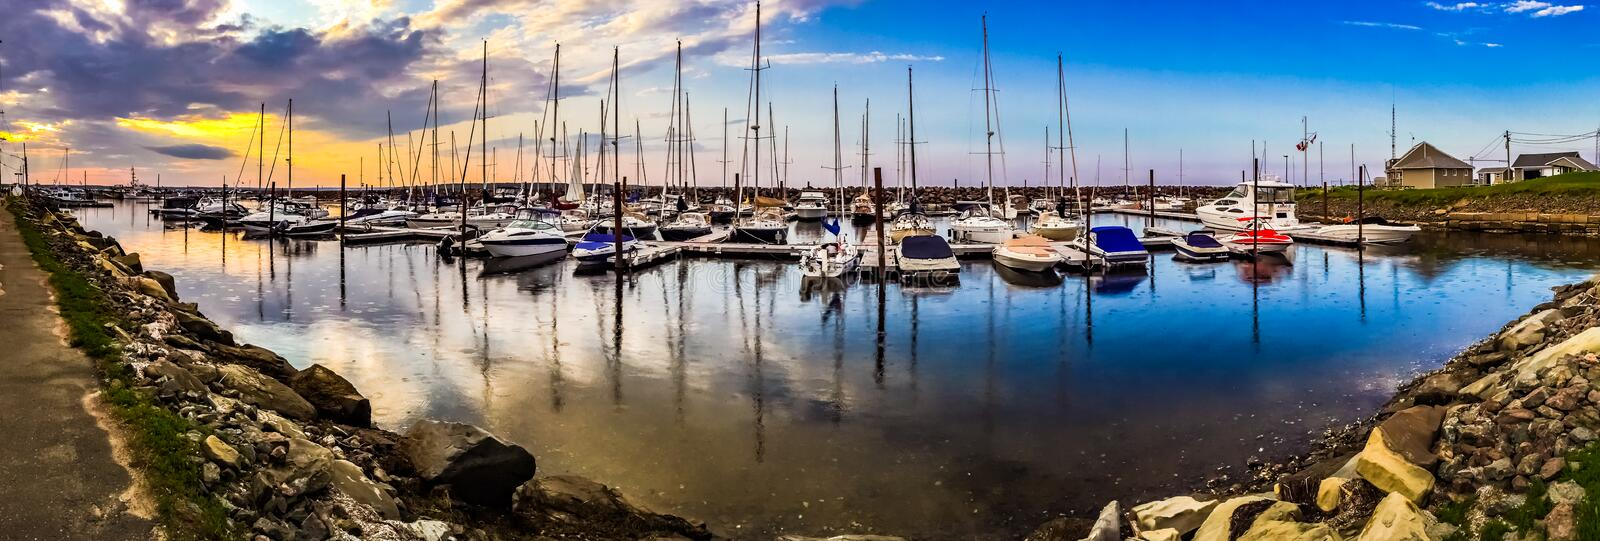 Boats in Shediac Bay, New Brunswick, Canada. During the first days of summer stock images